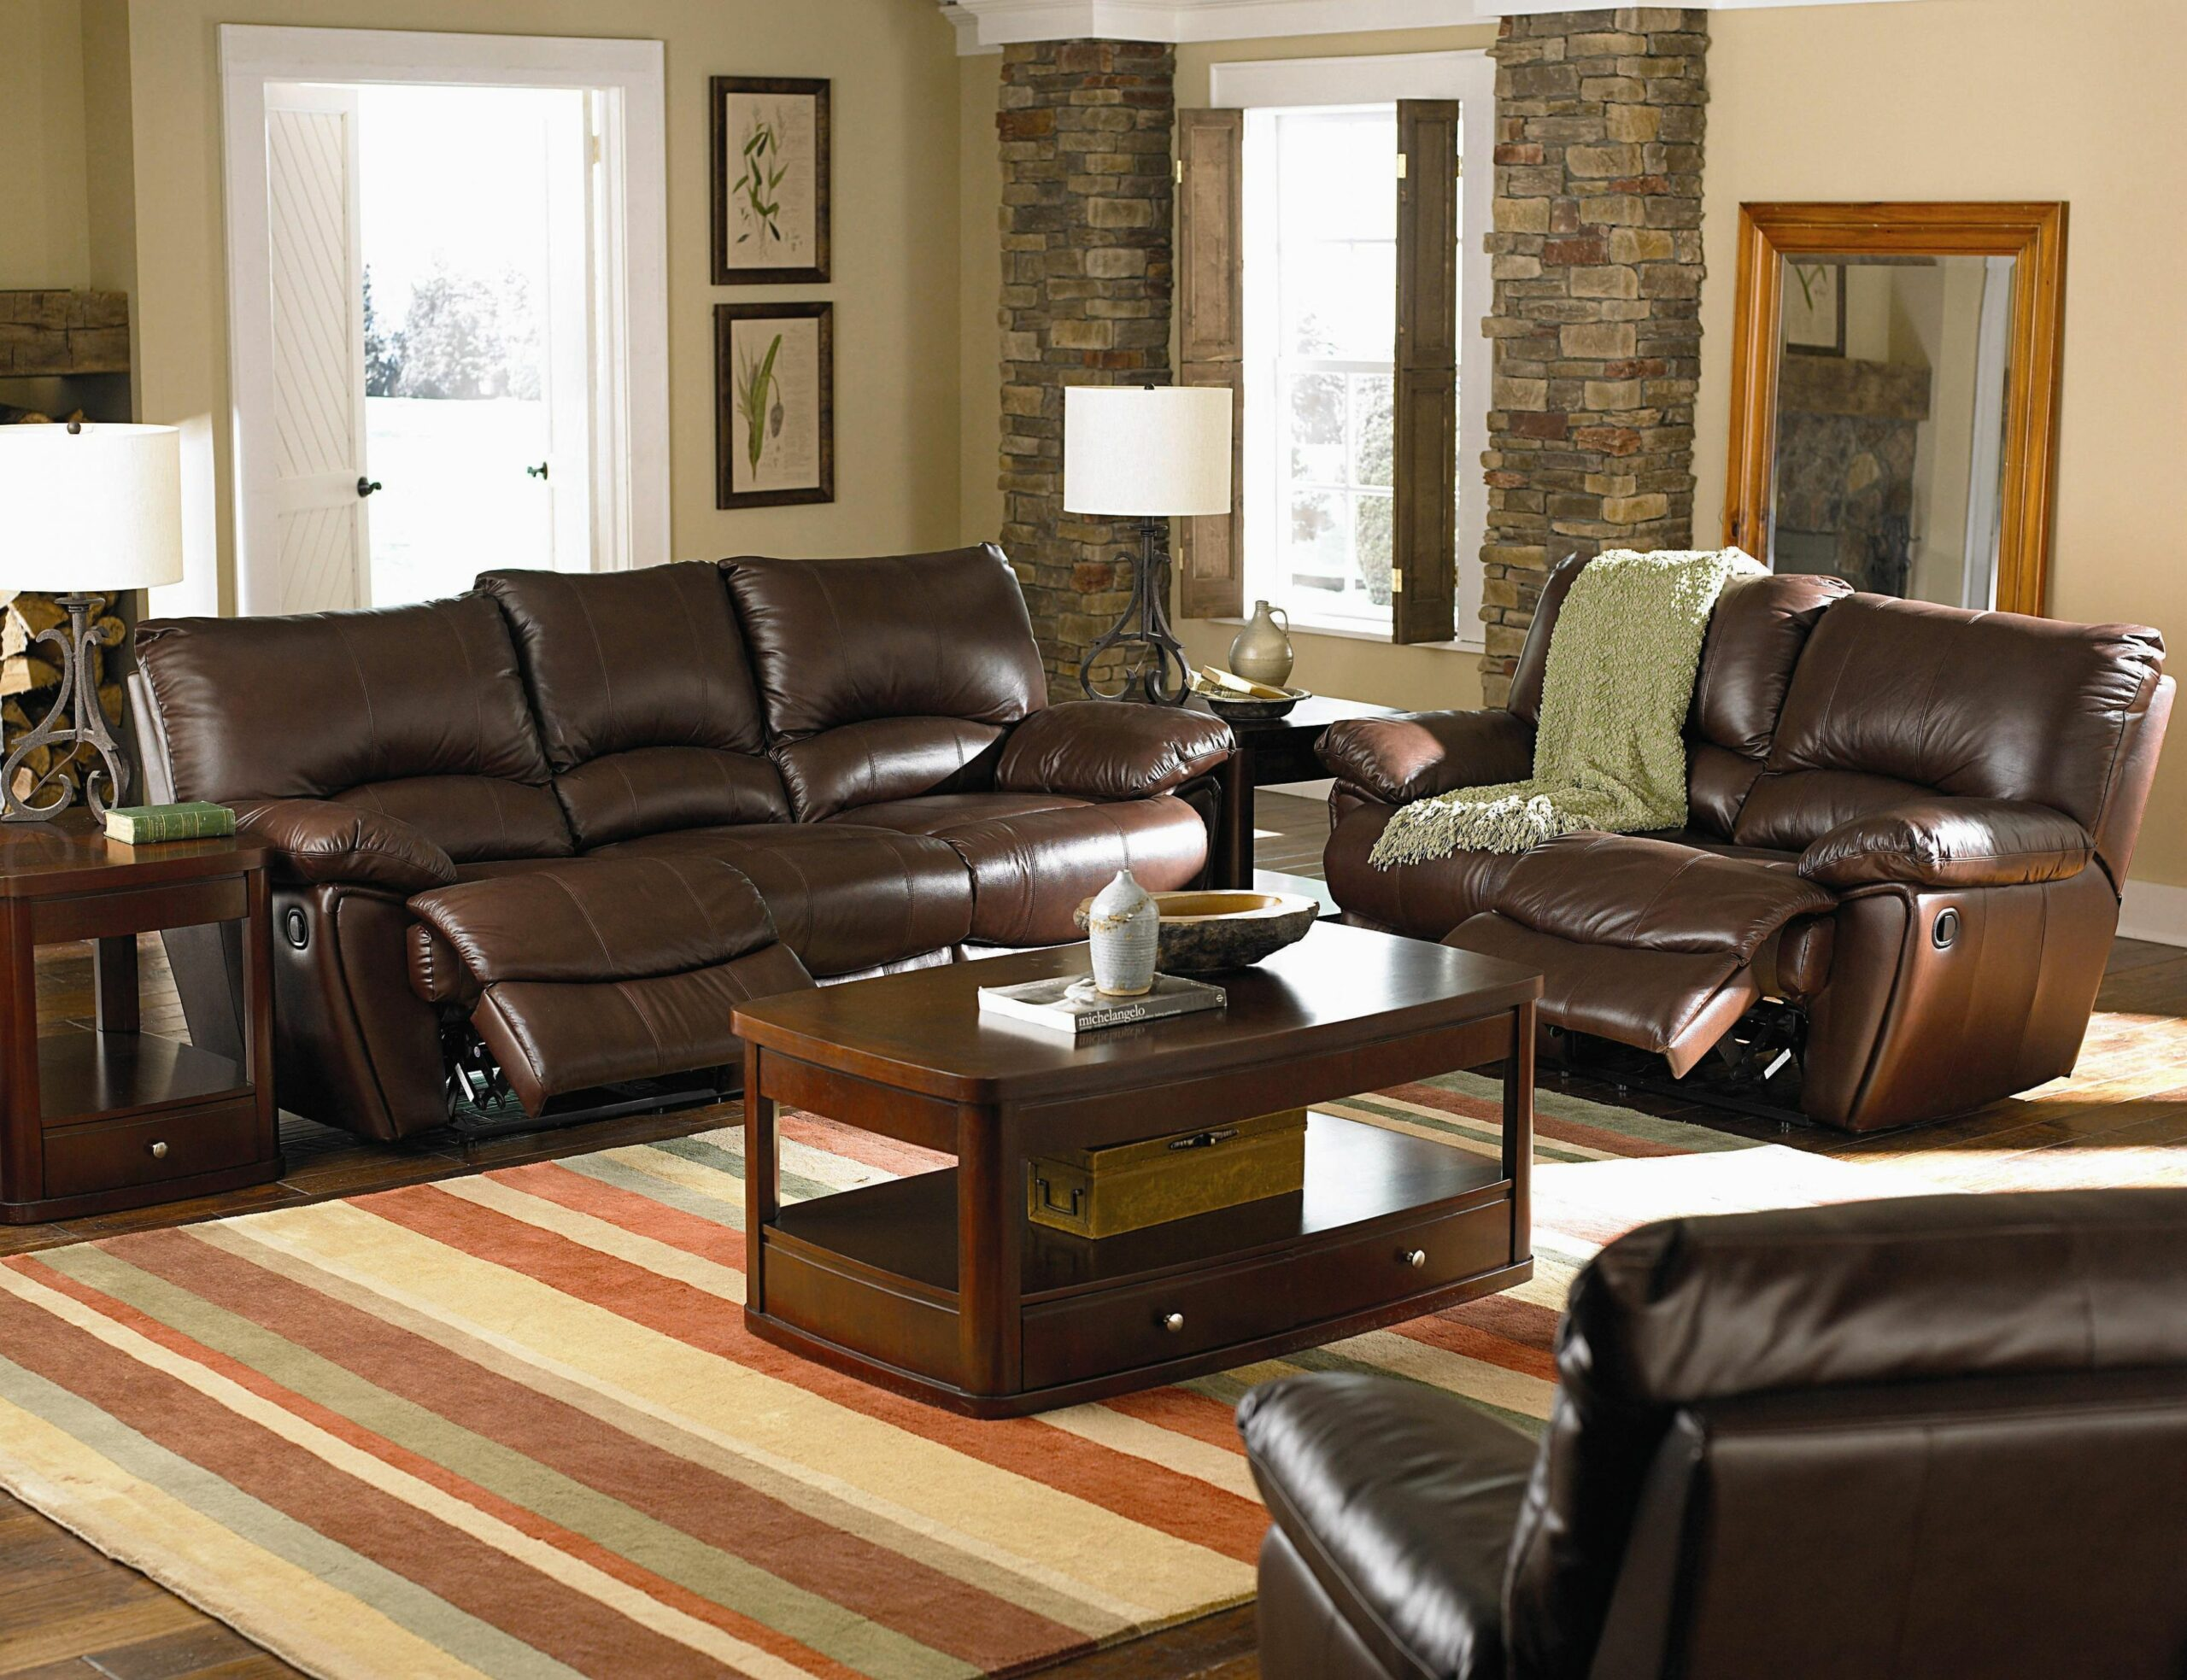 Leather Recliner Living Room Sets Home Design Ideas Chairs Tables ..